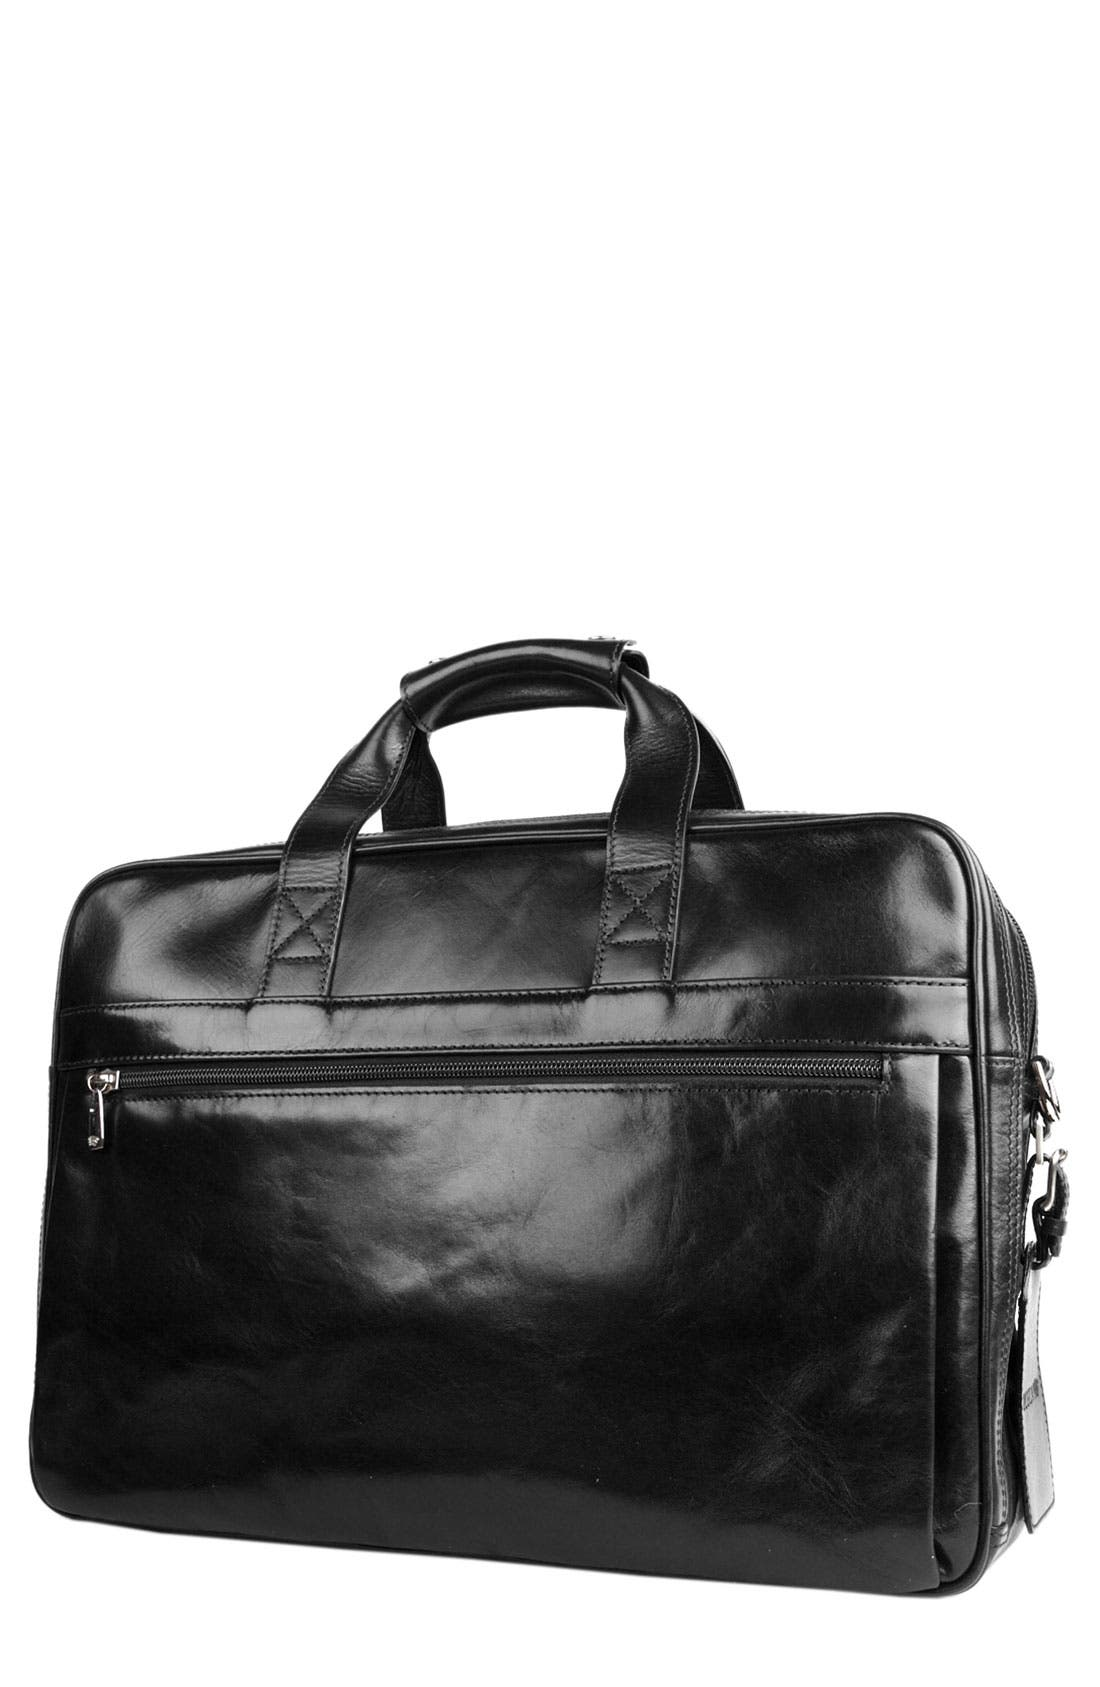 Alternate Image 1 Selected - Bosca Double Compartment Leather Briefcase